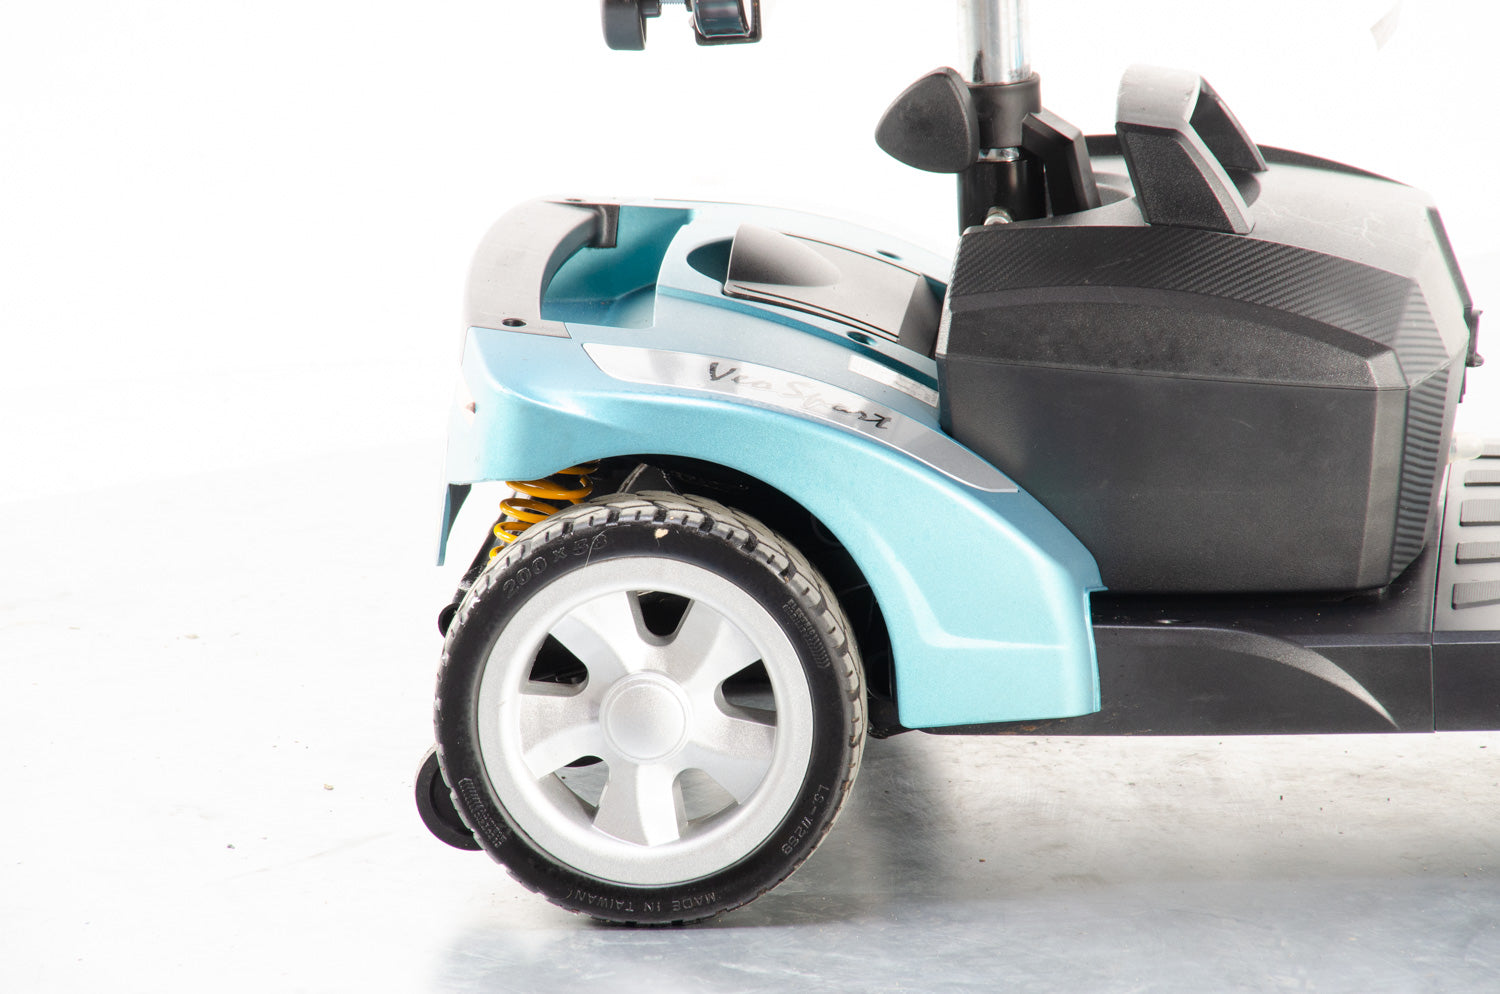 2019 Rascal Veo Sport 4mph Transportable Electric Mobility Boot Scooter with Suspension in Aquamarine